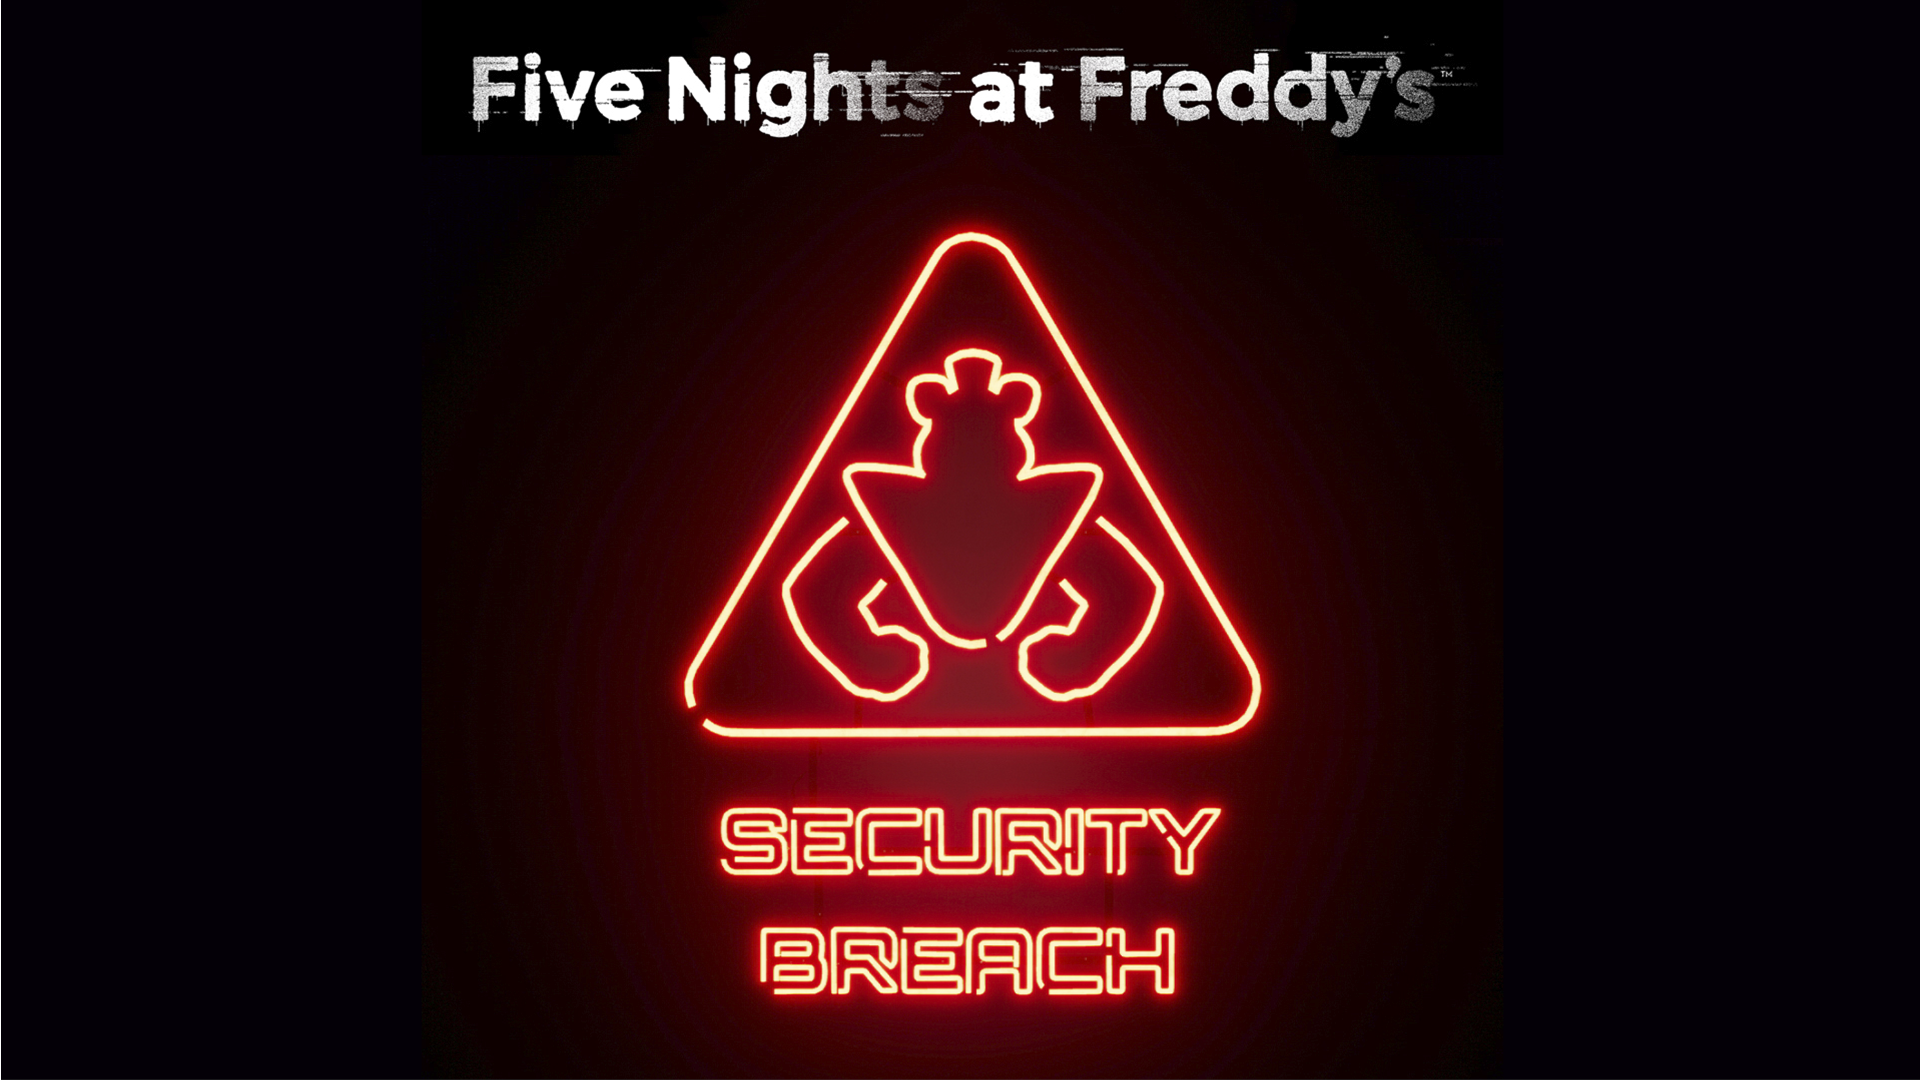 Five Nights at Freddy's: Security Breach - recurso promocional